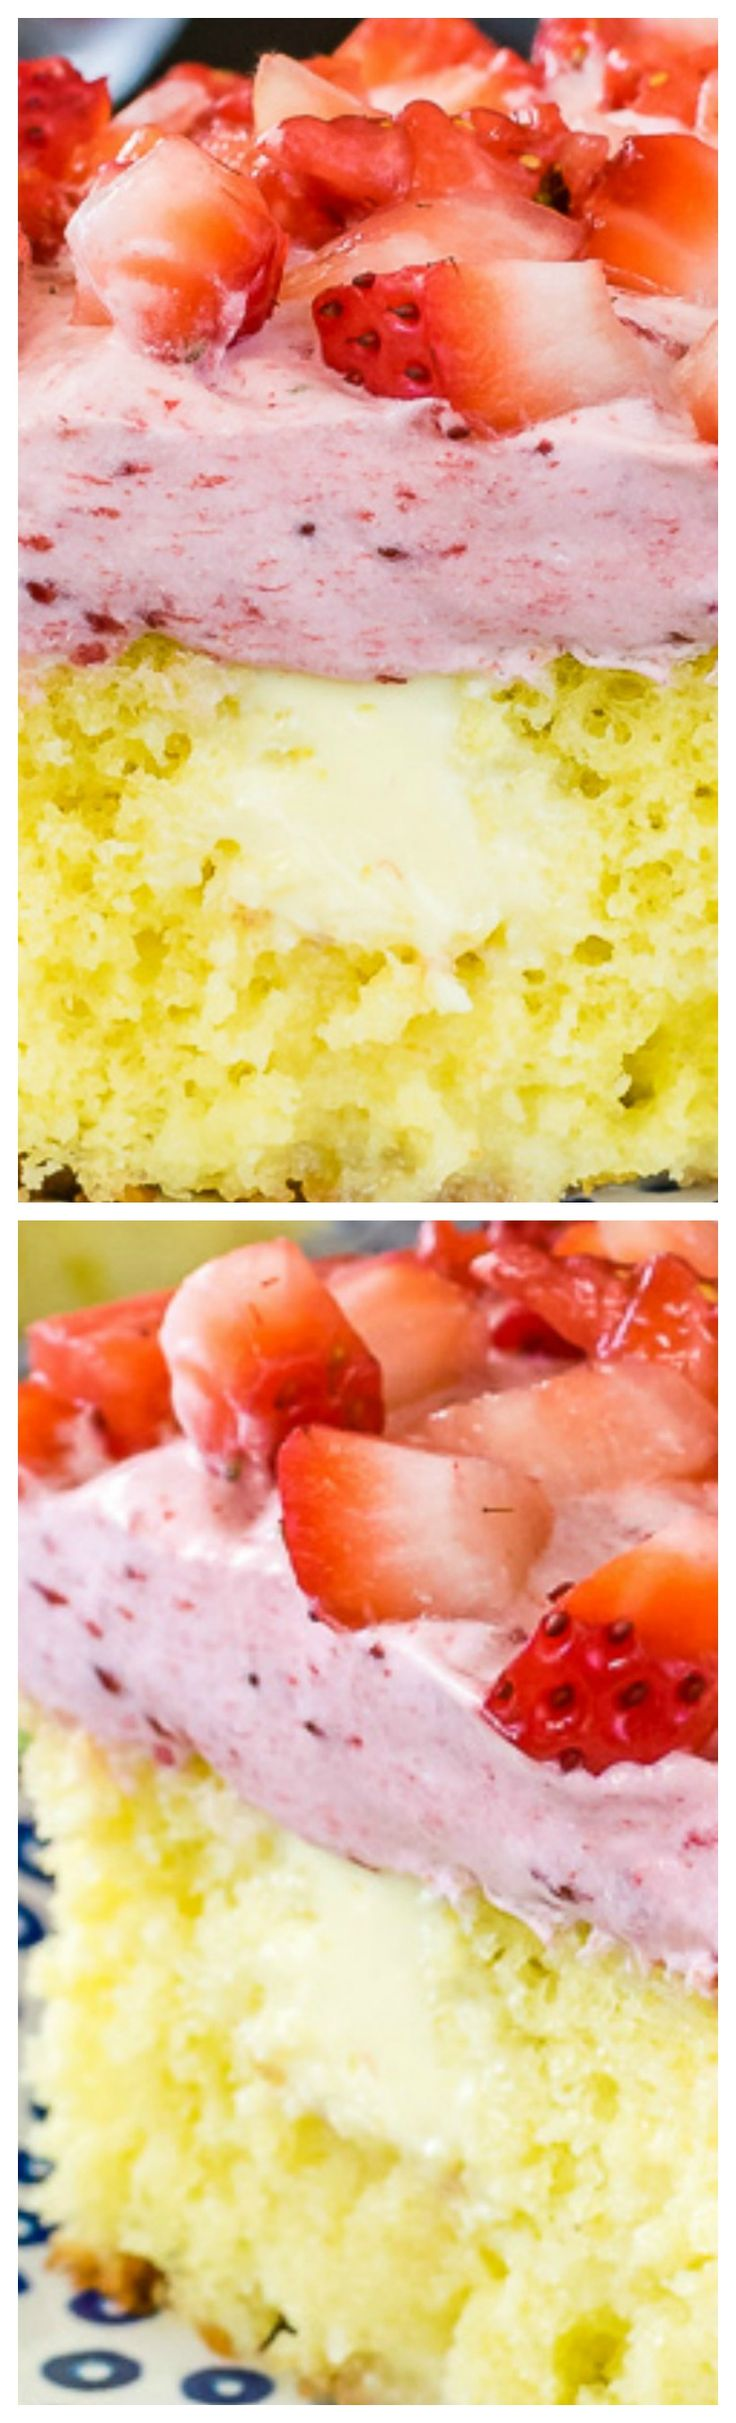 Lemon Strawberry Poke Cake ~ Easy and refreshing... The creamy lemon frosting pockets and fluffy strawberry mousse make this a favorite with everyone.